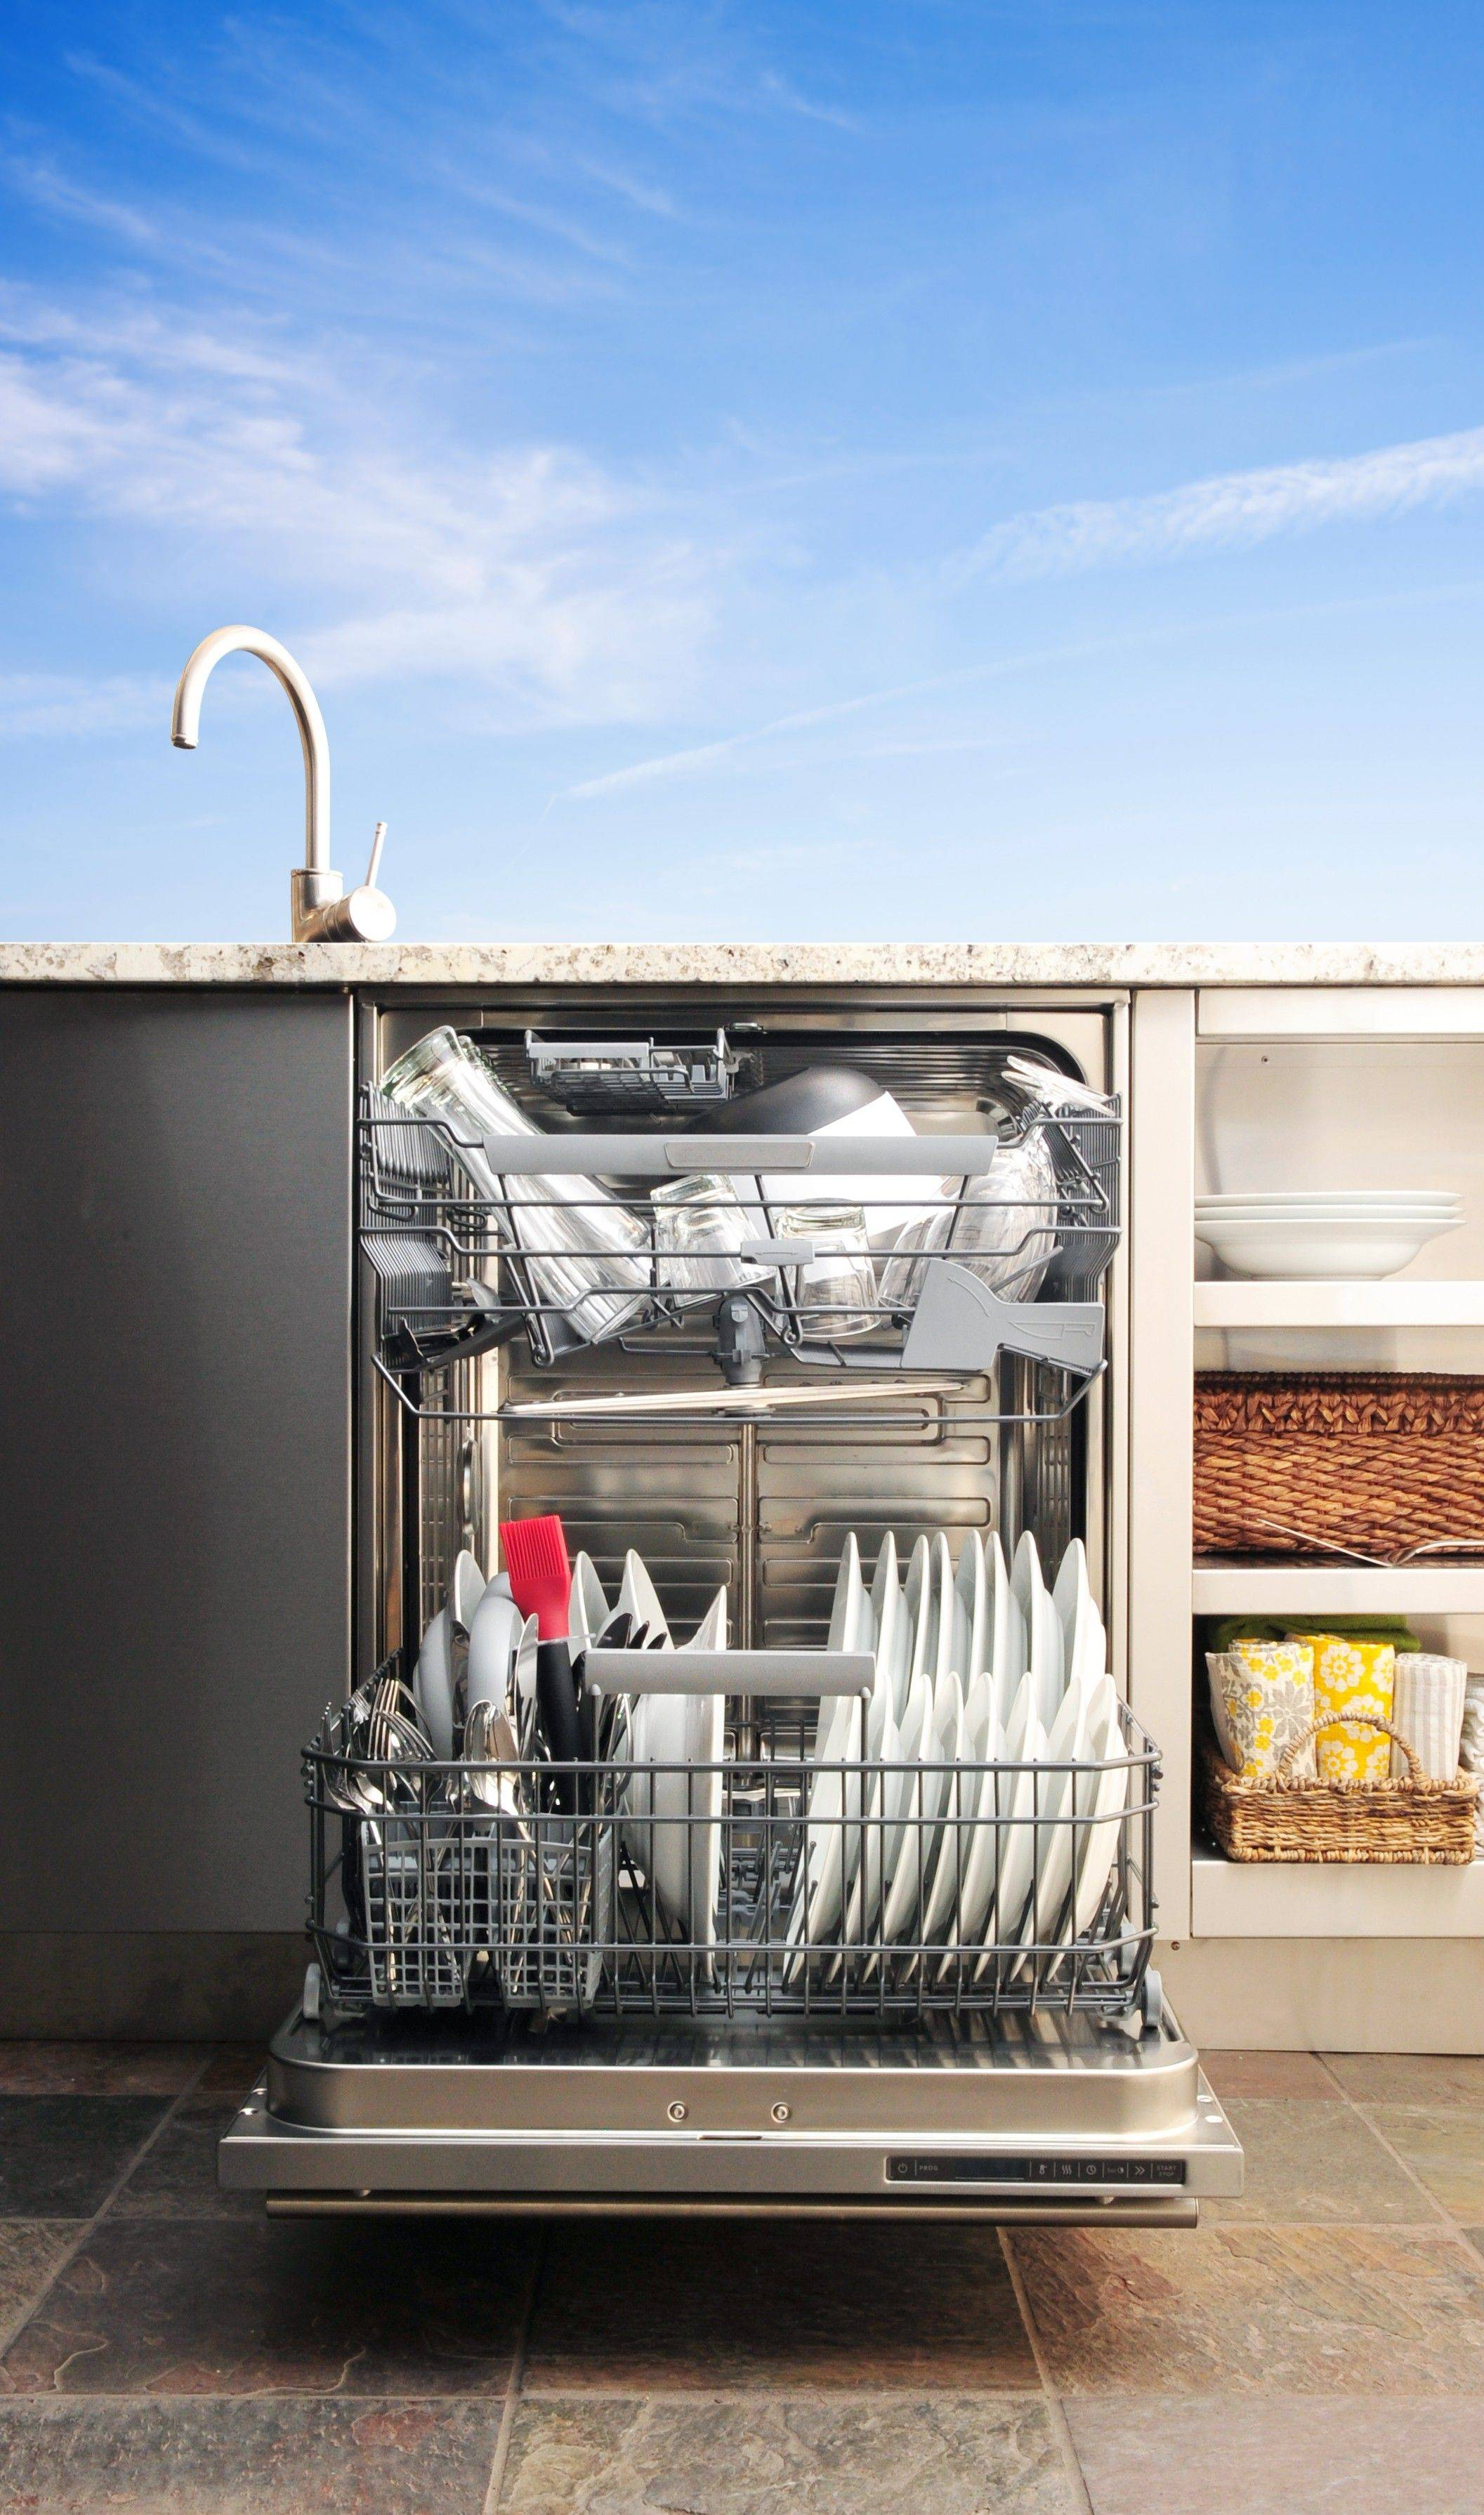 While it certainly doesn't fit in every budget, this $4,990 outdoor dishwasher would save the effort of carrying Labor Day's dirty dishes all the way back inside.